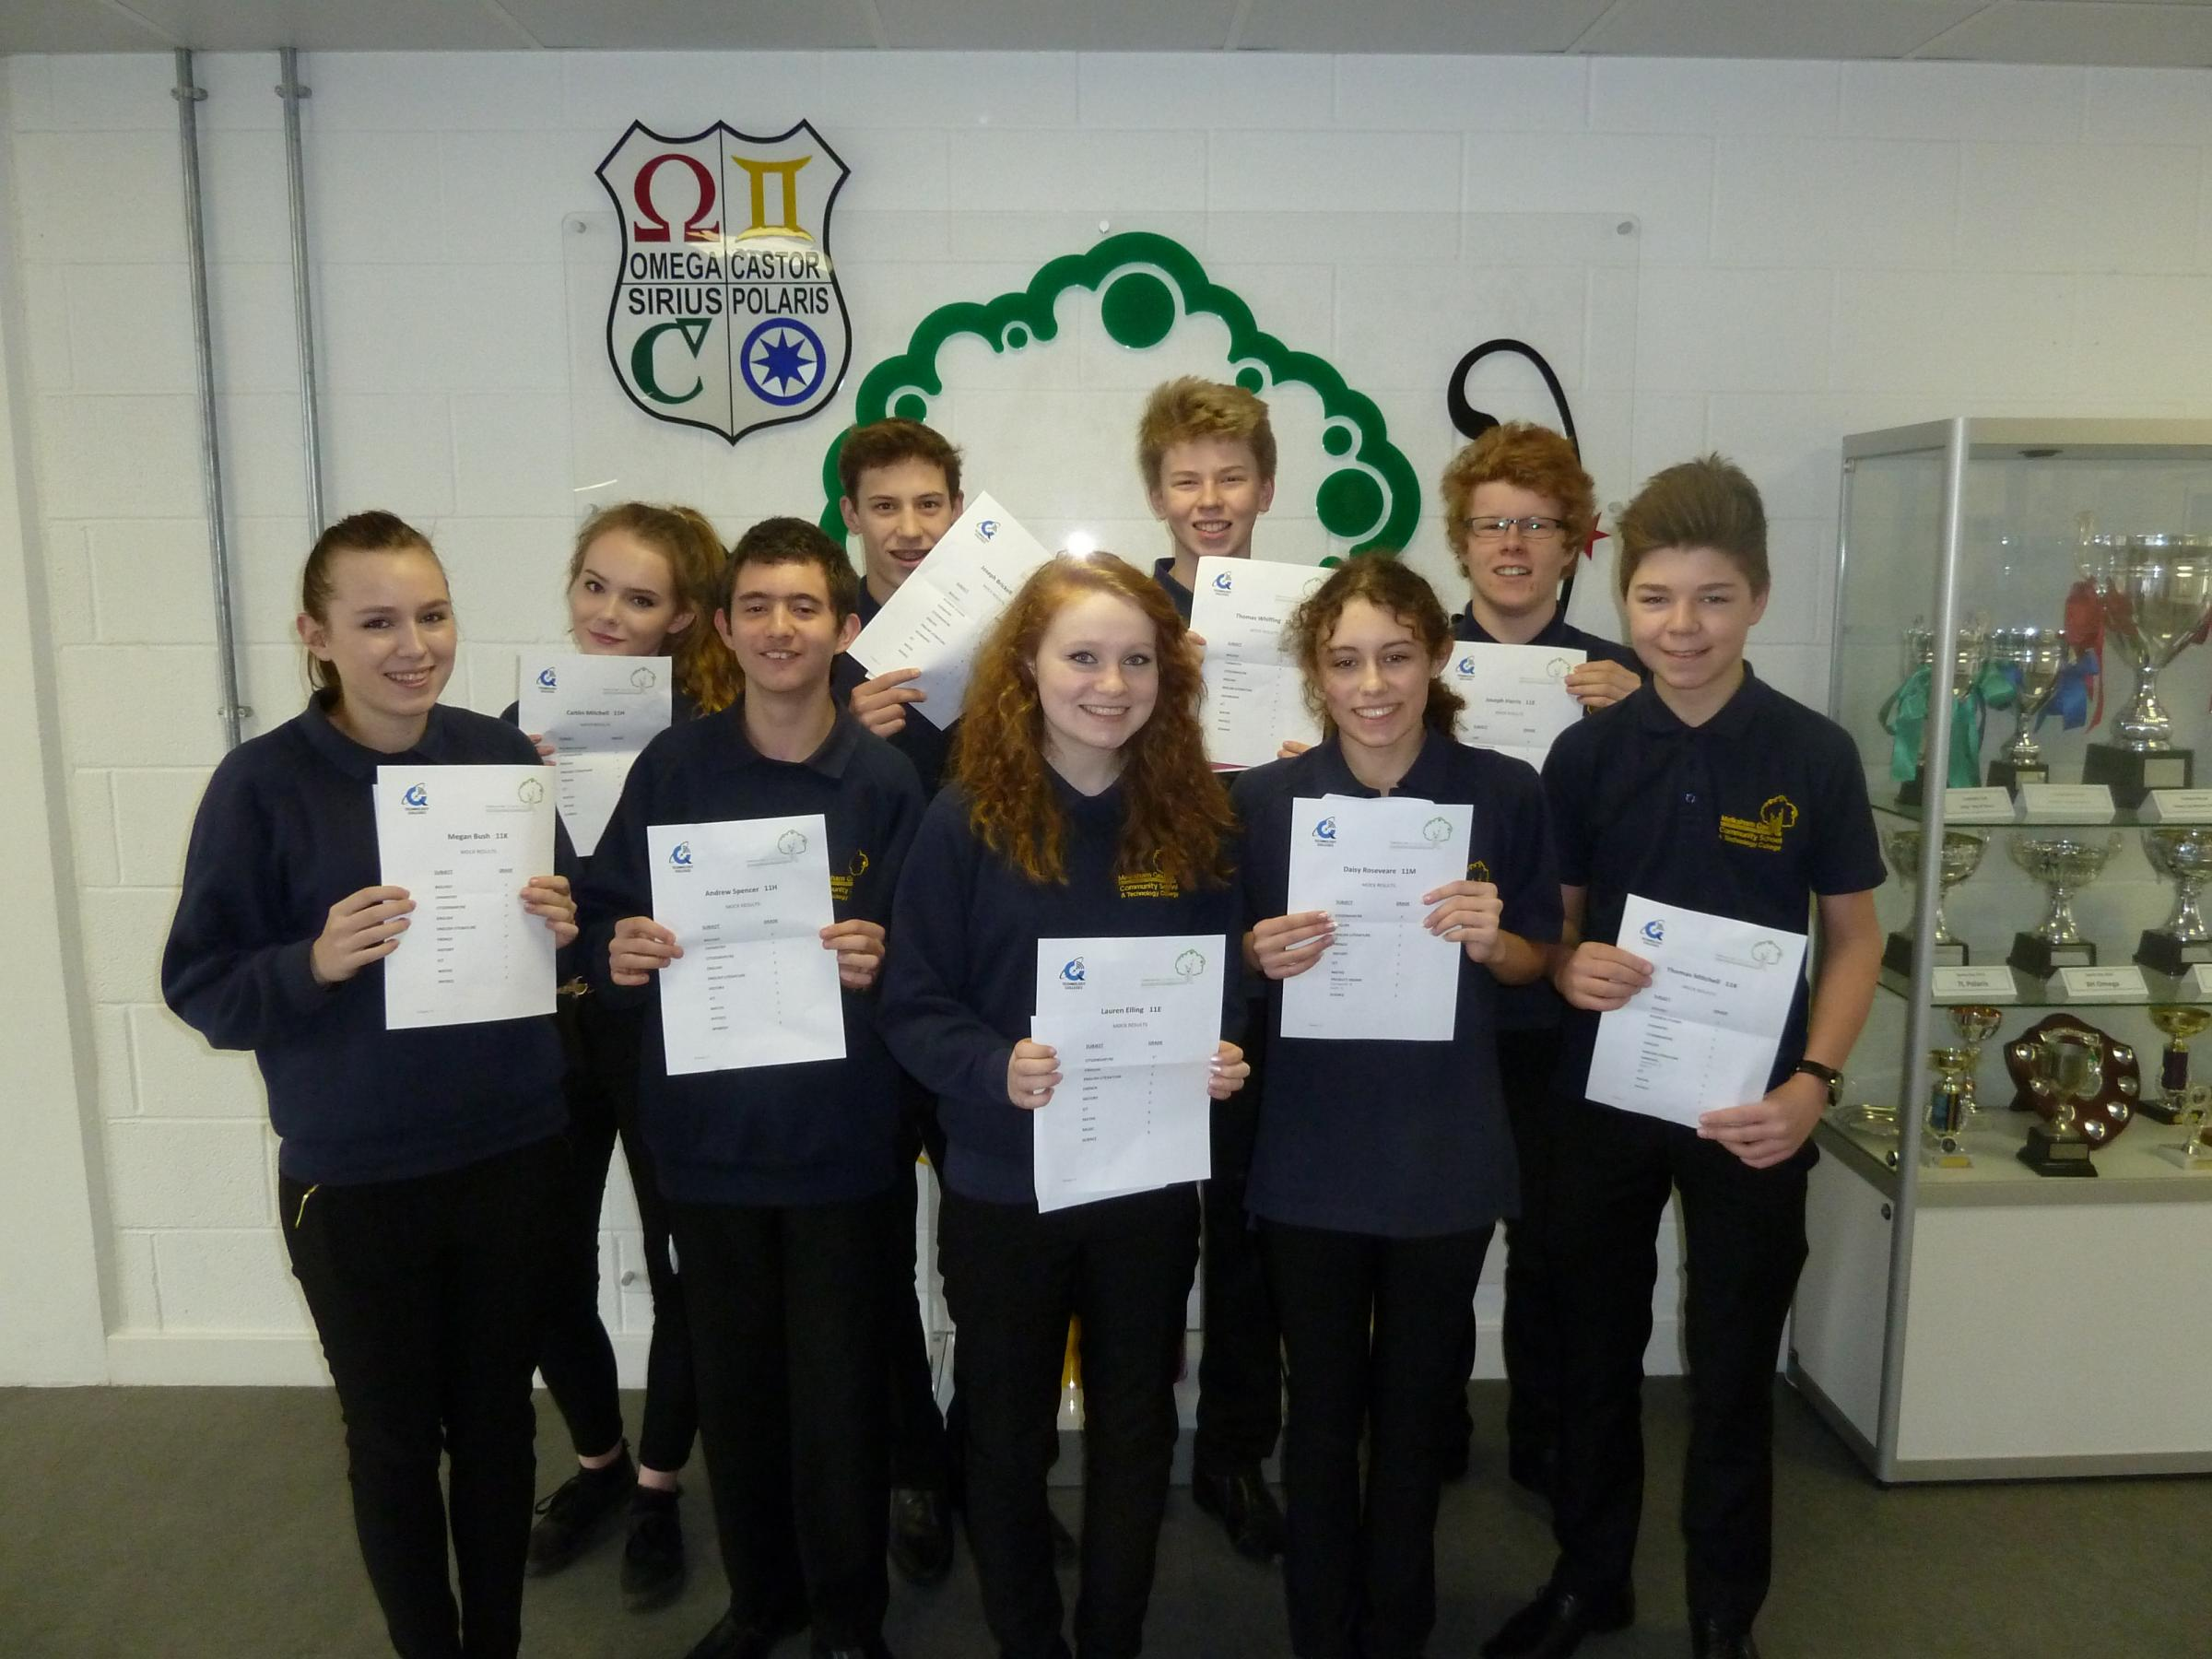 The school's top 10 achievers celebrate their mock results: Tom Whiffing, Joe Harris, Megan Bush, Daisey Roseveare, Caitlin Mitchell, Andrew Spencer, Sam Day, Lauren Elling, Tom Mitchell and Jojo Brickell